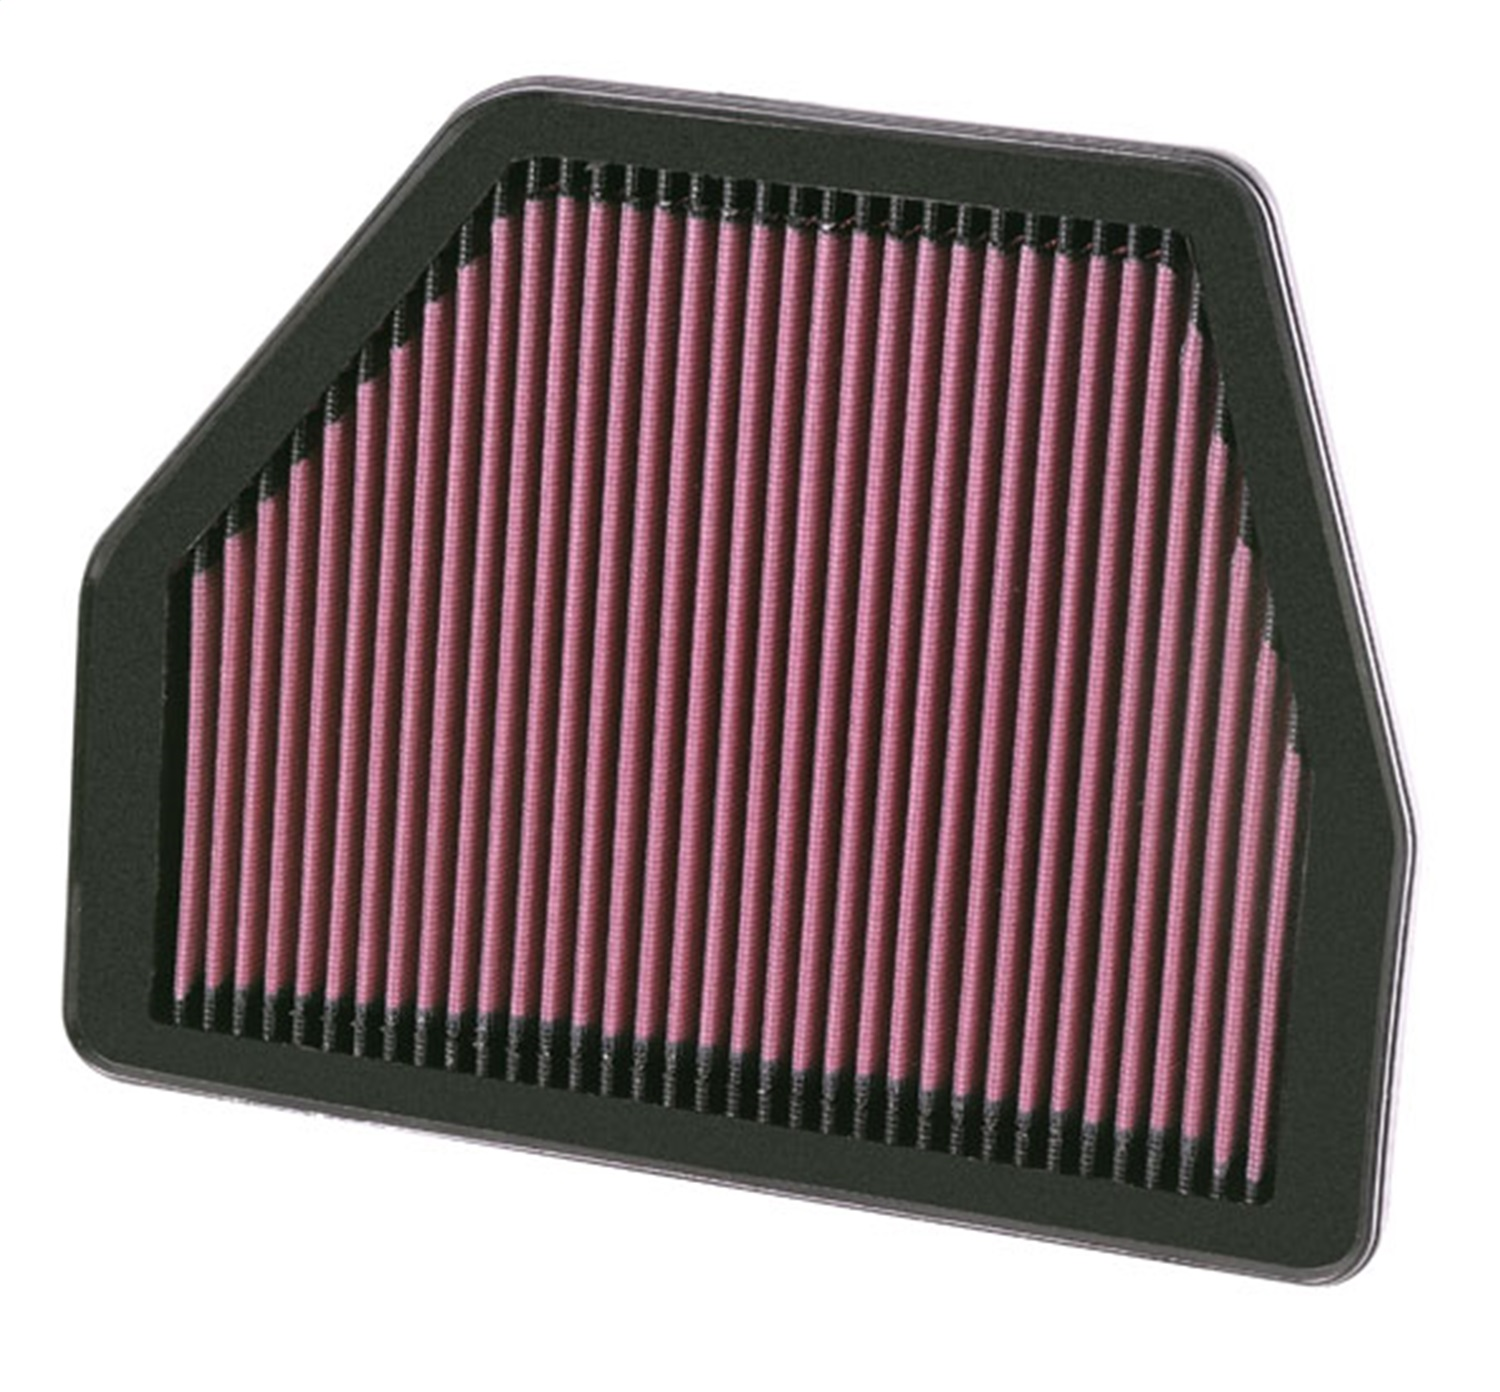 K&N Filters 33-2404 Air Filter Fits 08-12 Captiva Sport Vue 33-2404